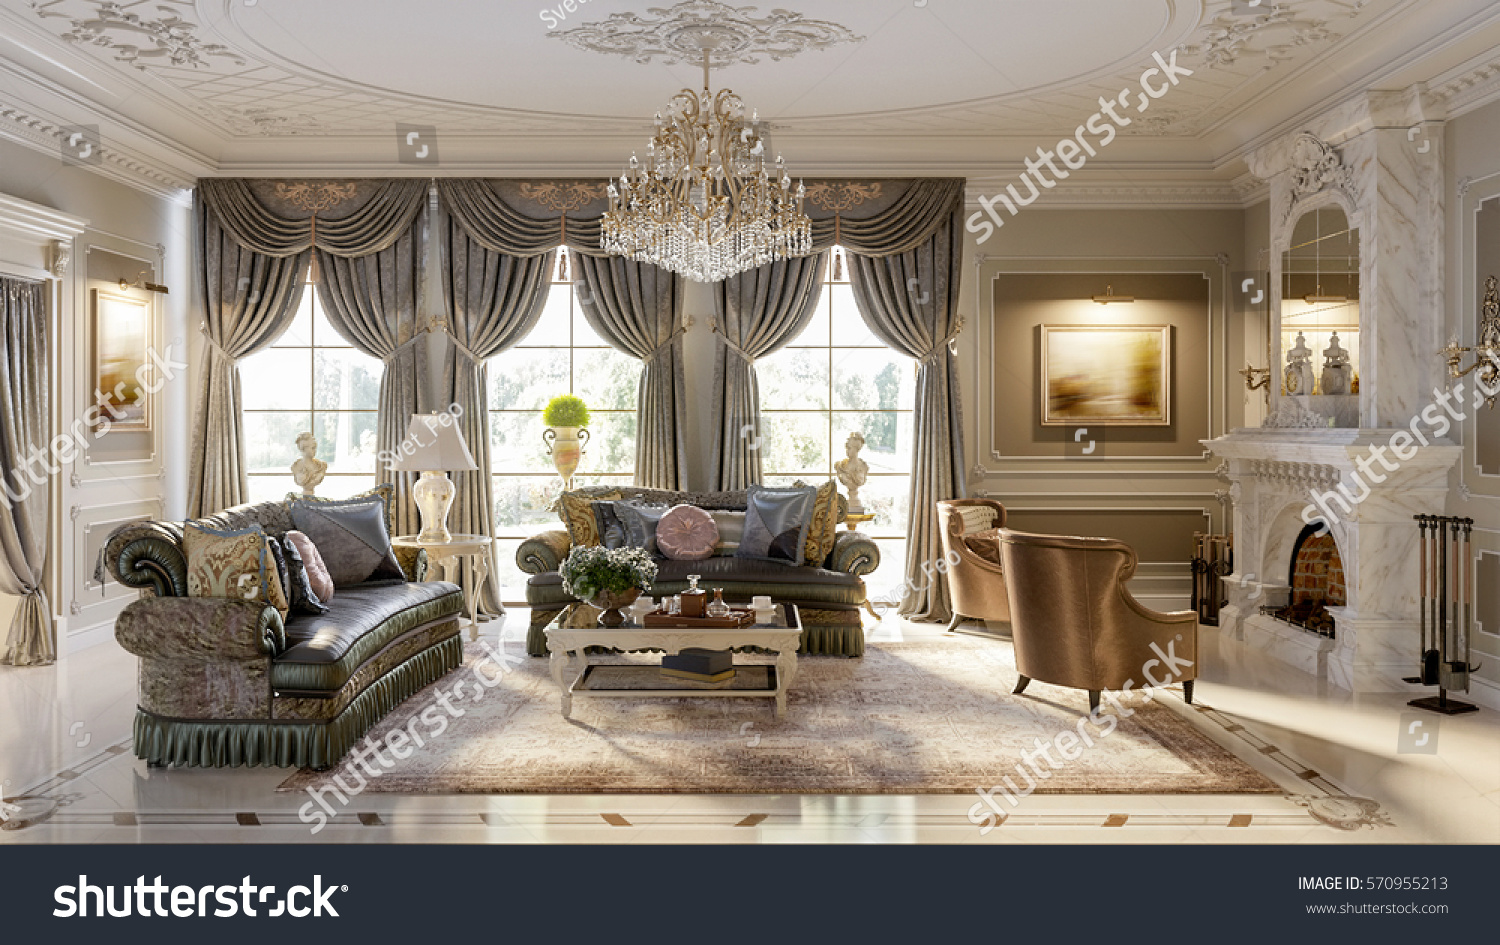 Luxurious baroque living room large classic stock illustration luxurious baroque living room in large classic style house with large marble fireplace marble floors dailygadgetfo Image collections